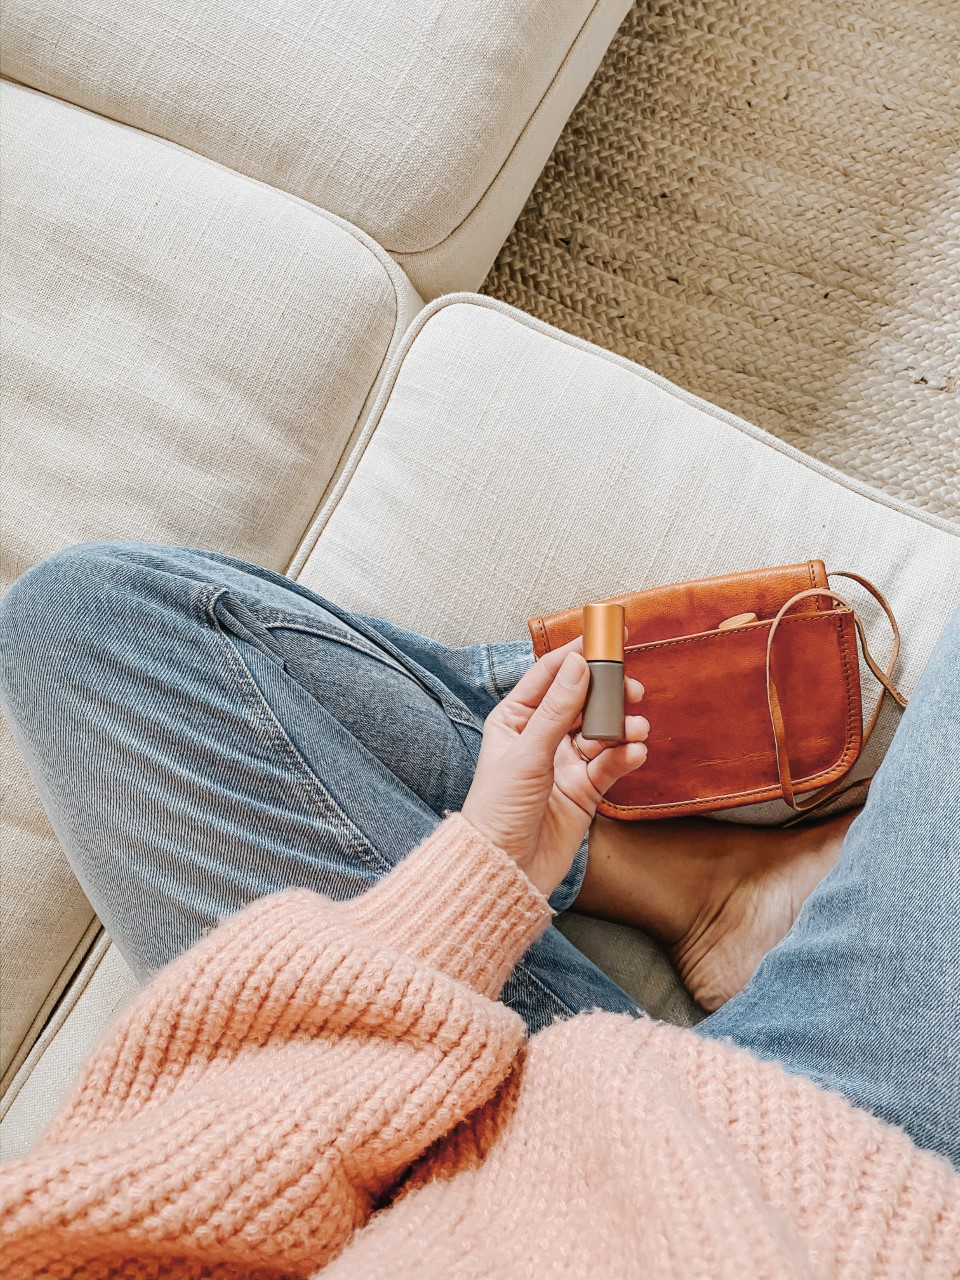 dunes collection roller bottle with young living essential oils and leather purse Emily Sue Netz for Whimsy and Wellness